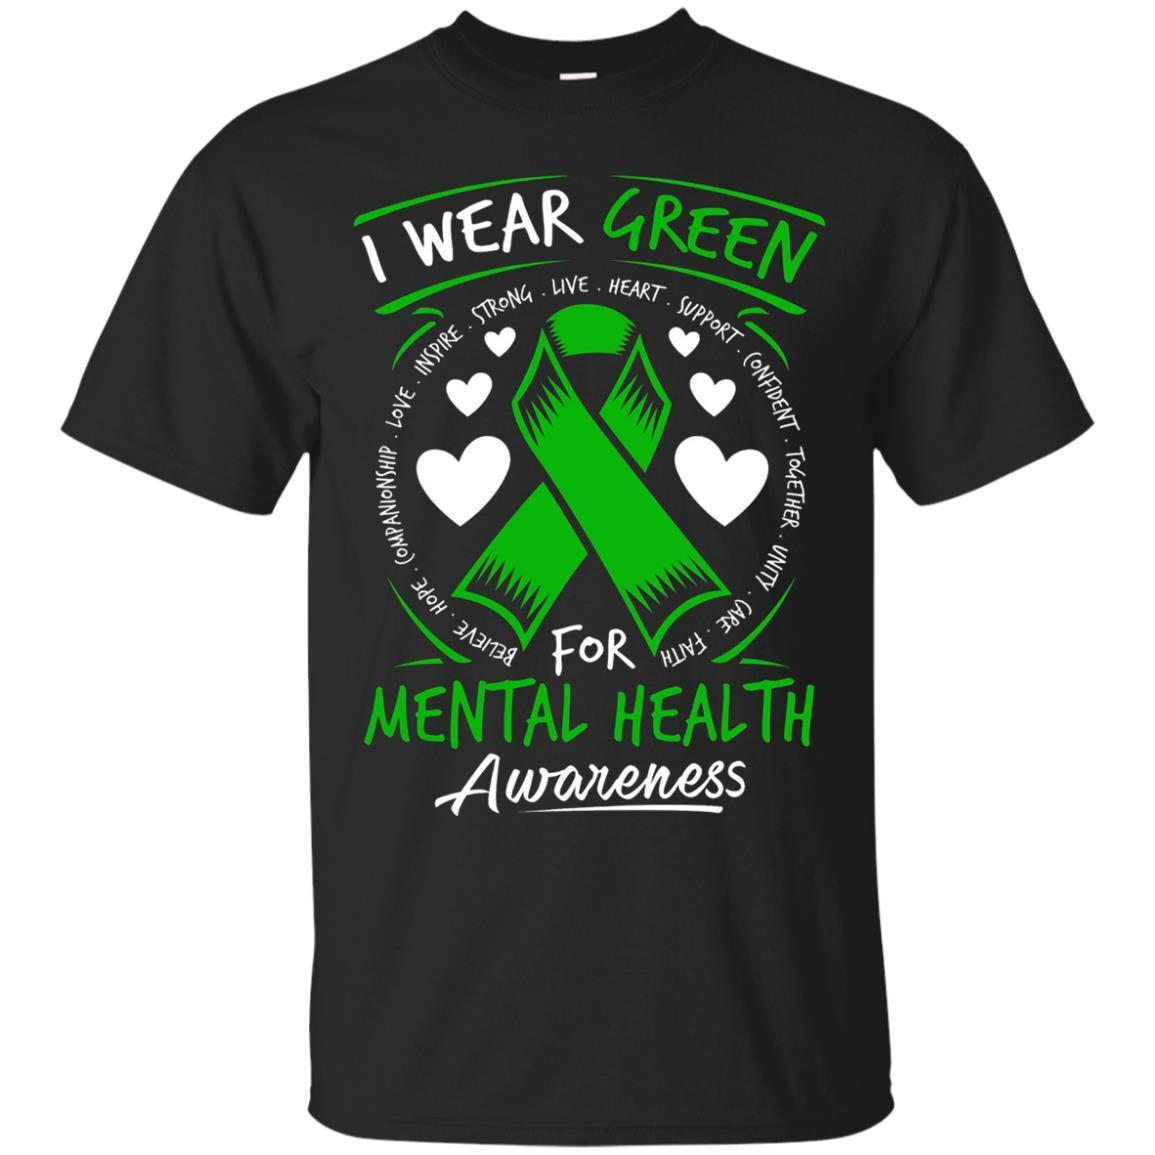 I Wear Green For Mental Health Awareness T Shirt